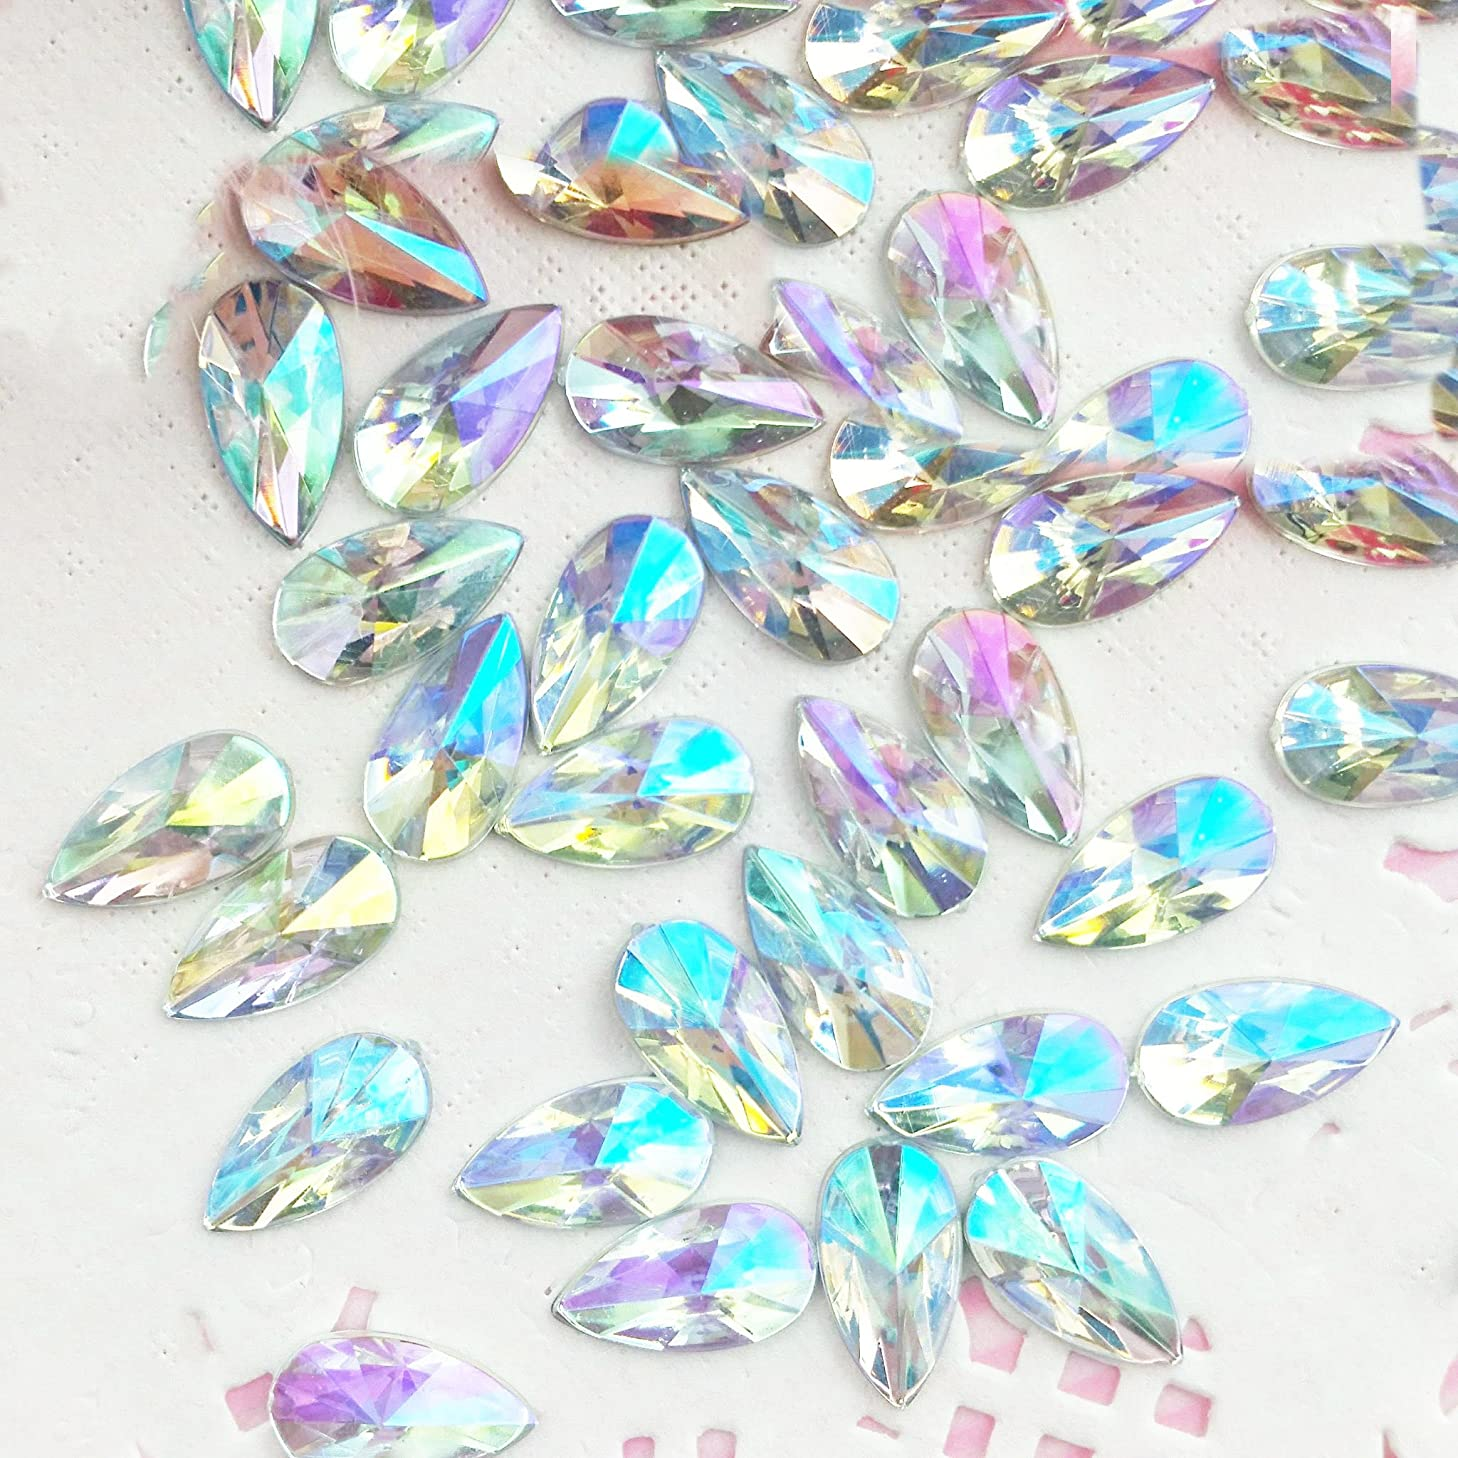 90 pcs 8x13mm Teardrop Light Crystal AB Acrylic Special Effect Rhinestonesship with FREE GIFT from GreatDeal68